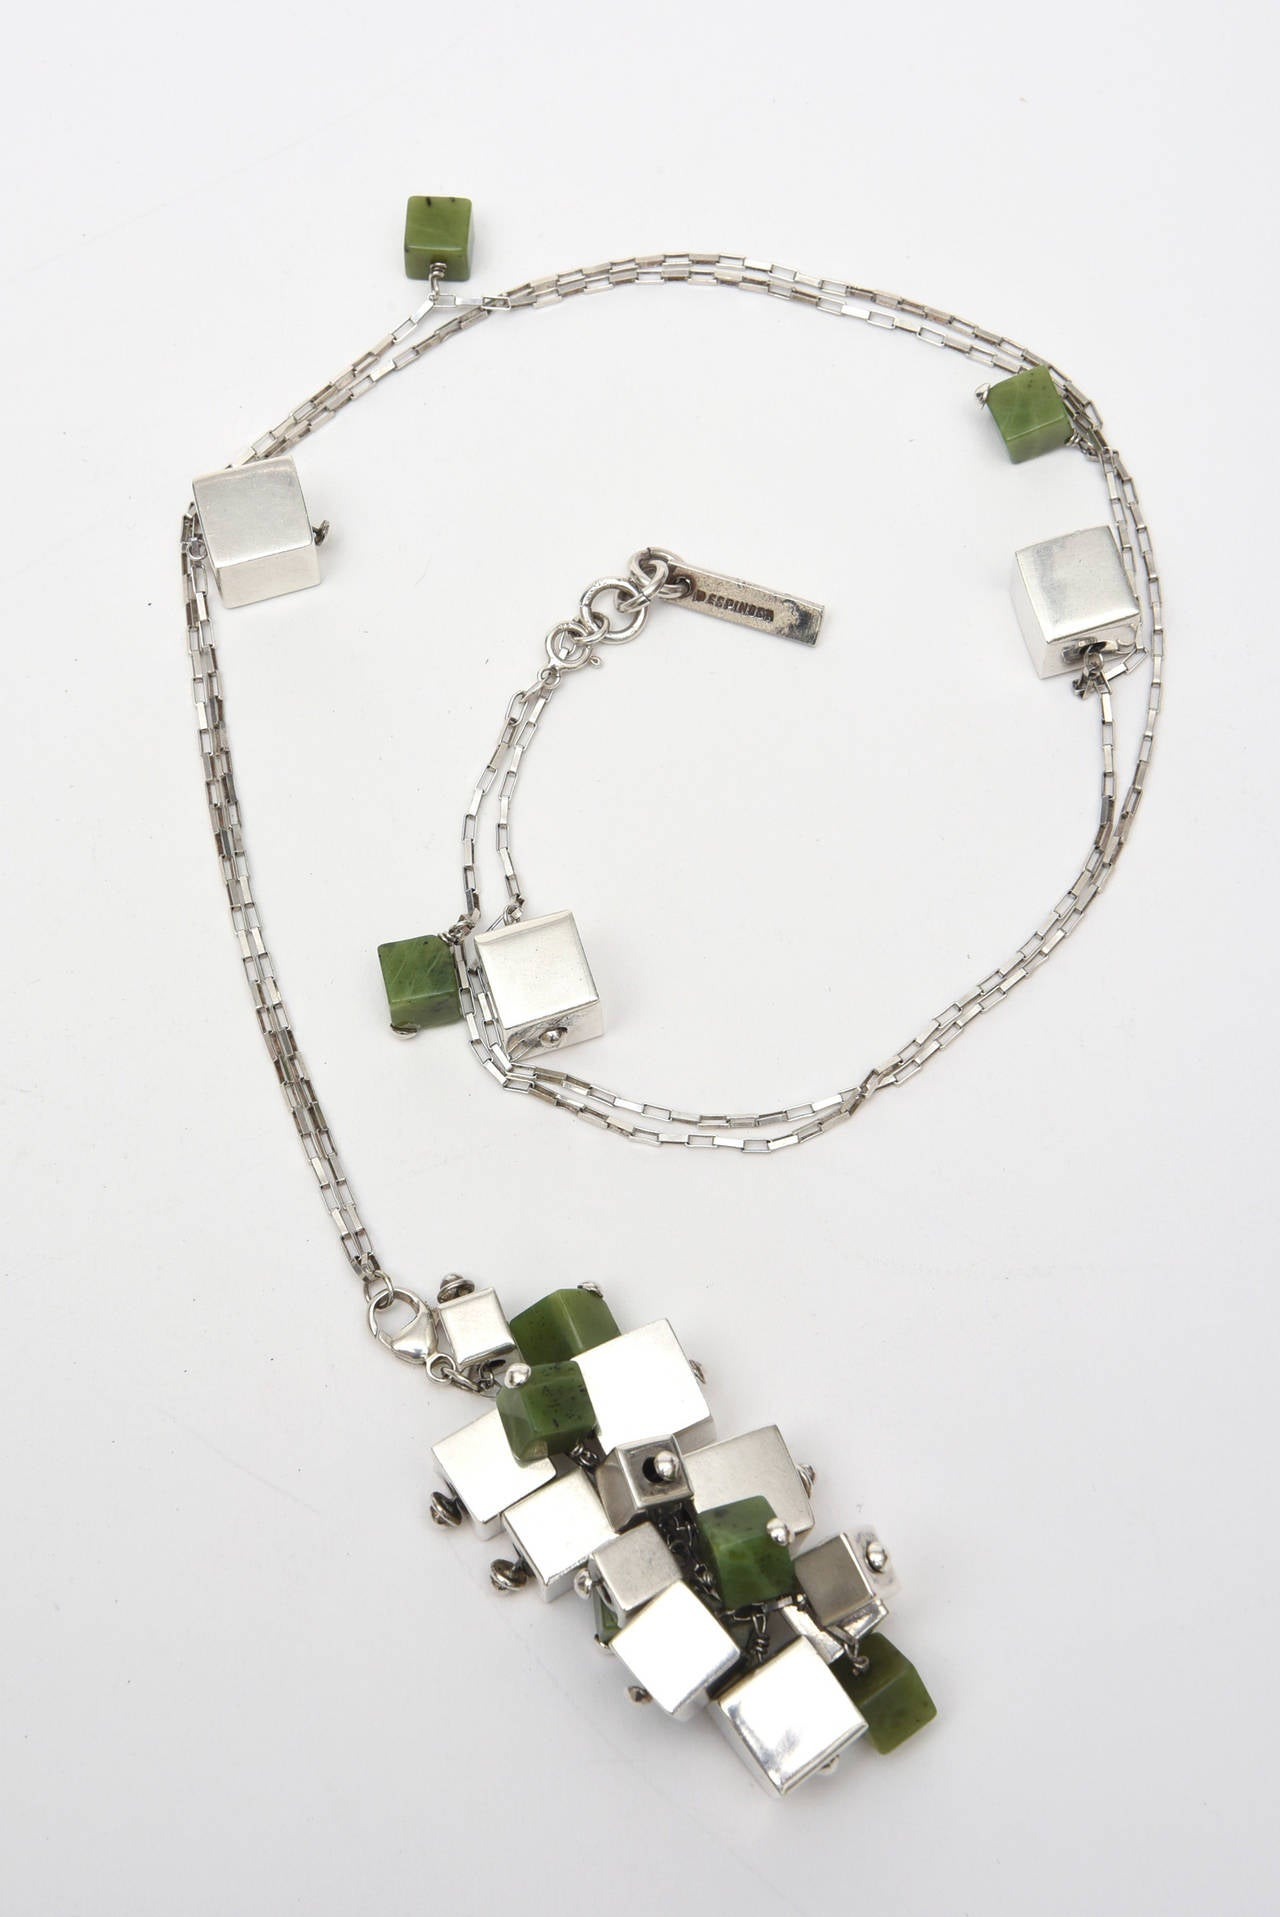 This amazing and spectacular studio necklace is signed, Espinosa, and it has geometric sterling silver boxes w/ jade boxes as well. Signed: Espinosa, Sterling 925. It is extremely sculptural and of cluster formations.  It is most likely one of a